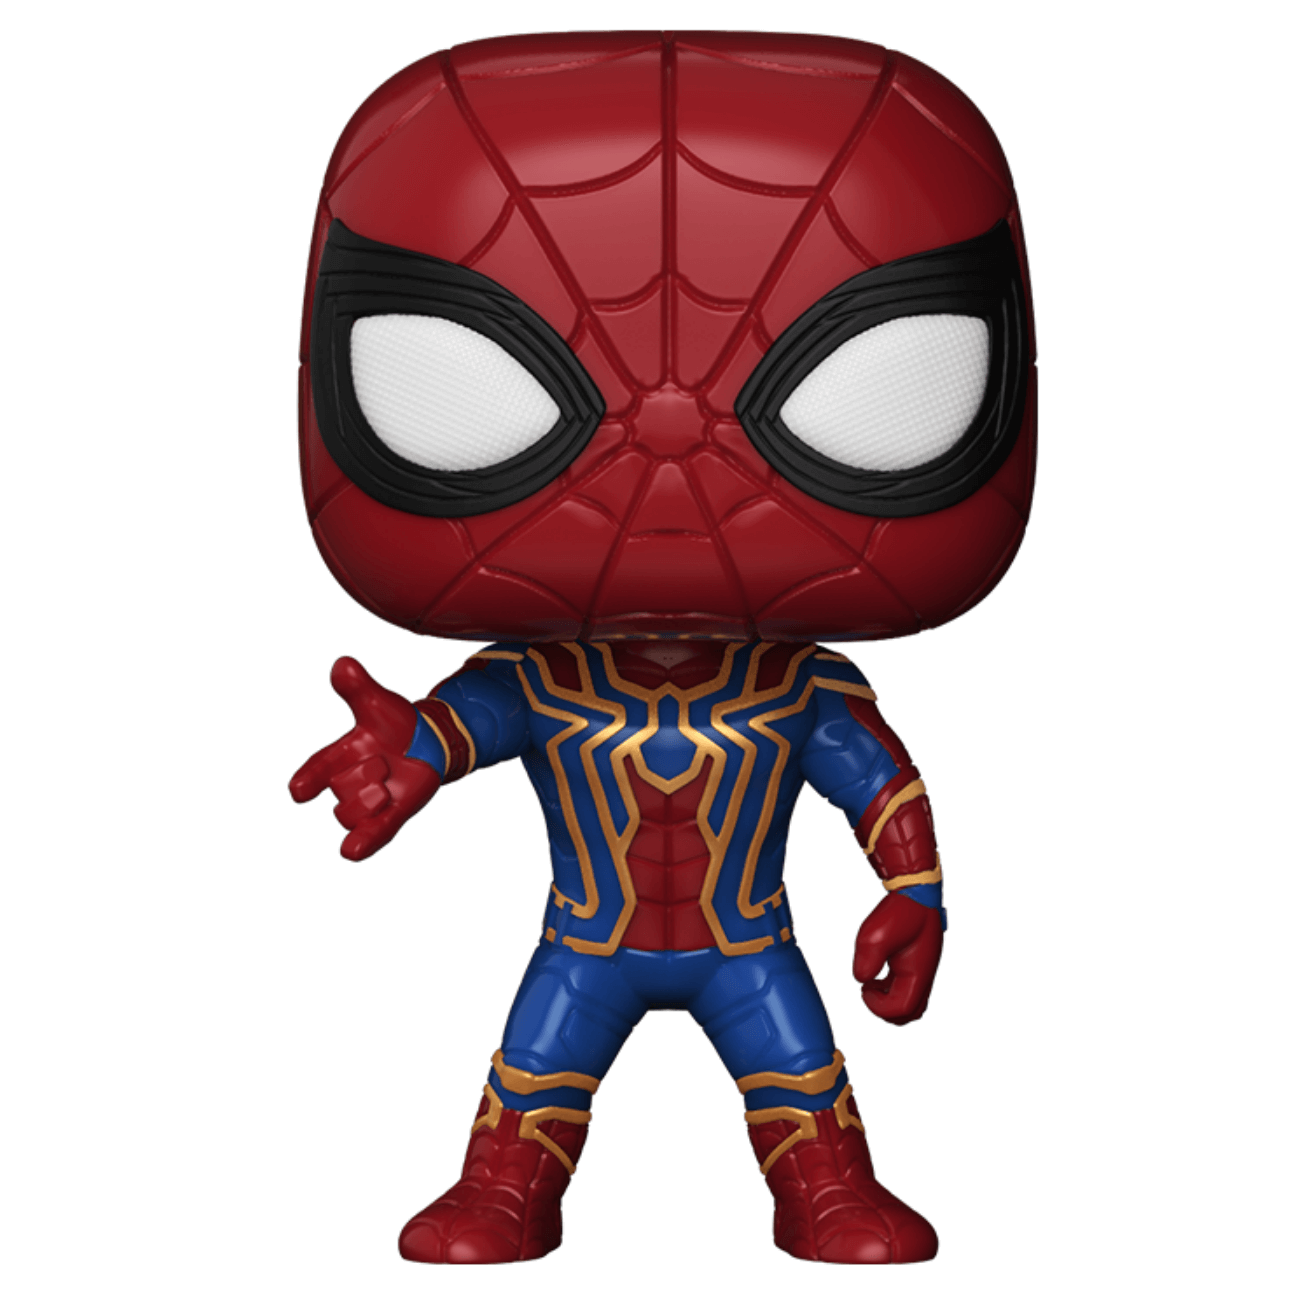 Marvel Avengers Infinity War Iron Spider Funko Pop Vinyl Pop In A Box Canada